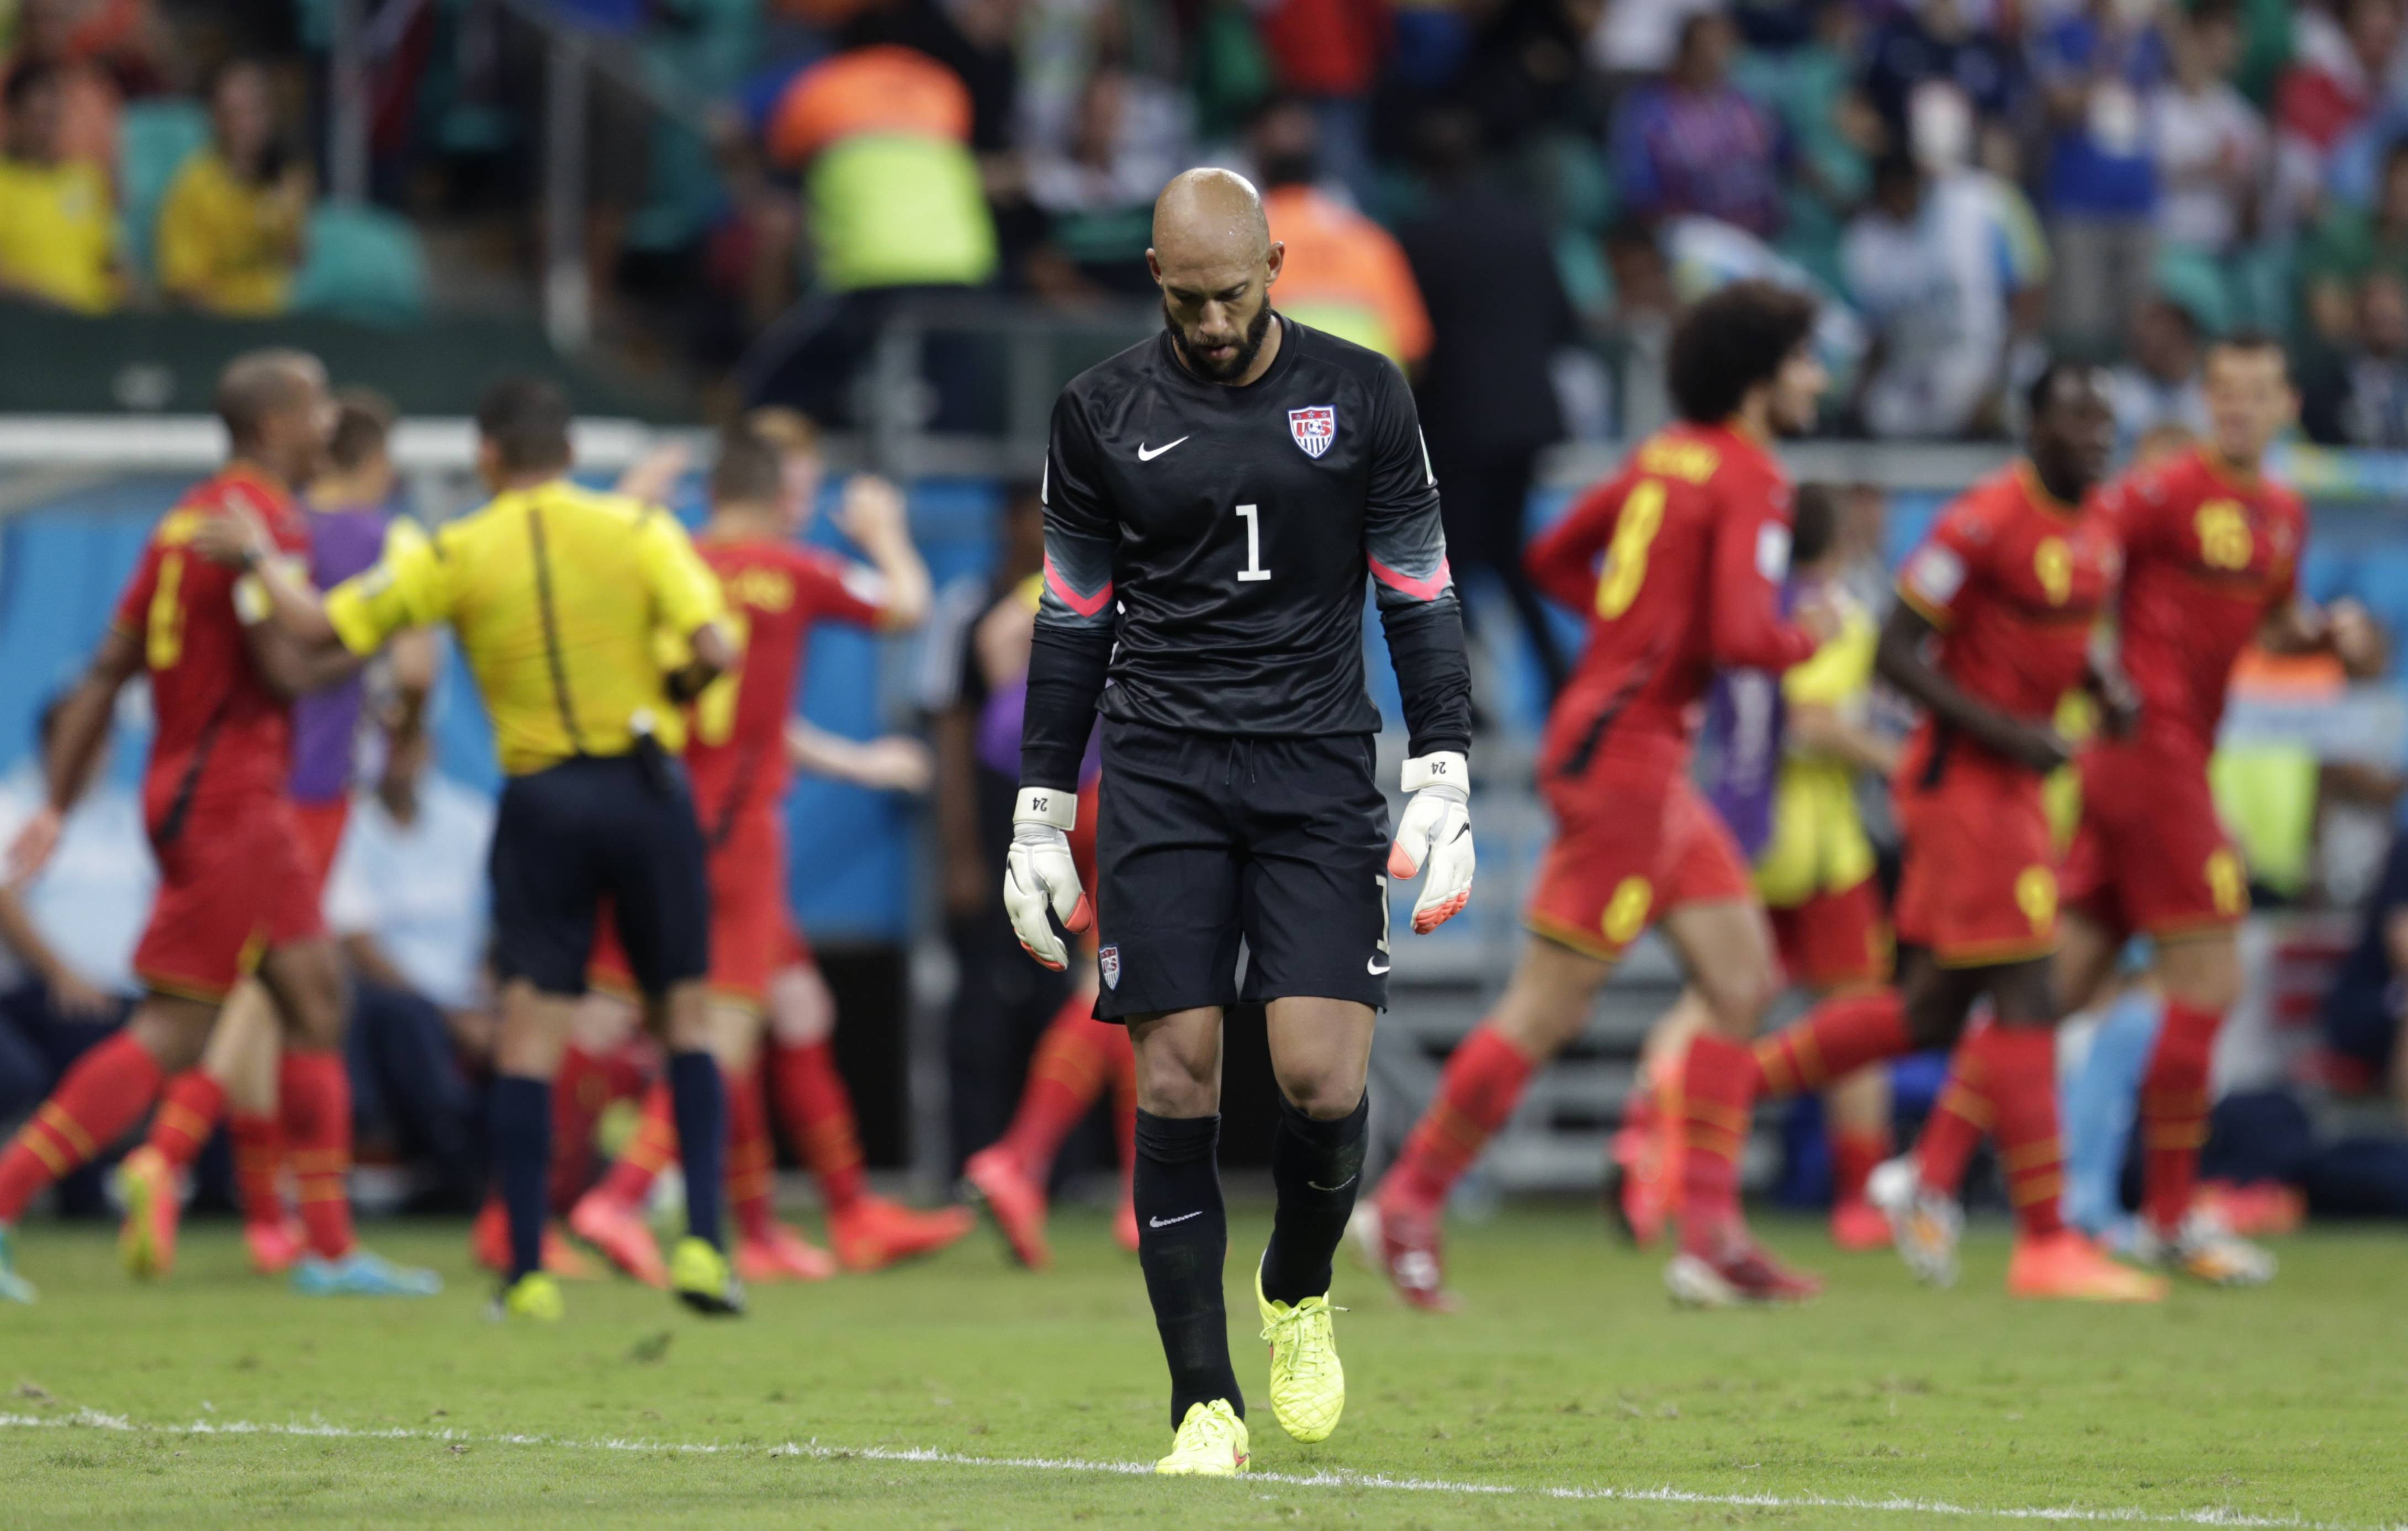 United States' goalkeeper Tim Howard, reacting after Belgium's Kevin De Bruyne scored the opening goal Tuesday, kept his team in the game with 16 saves.